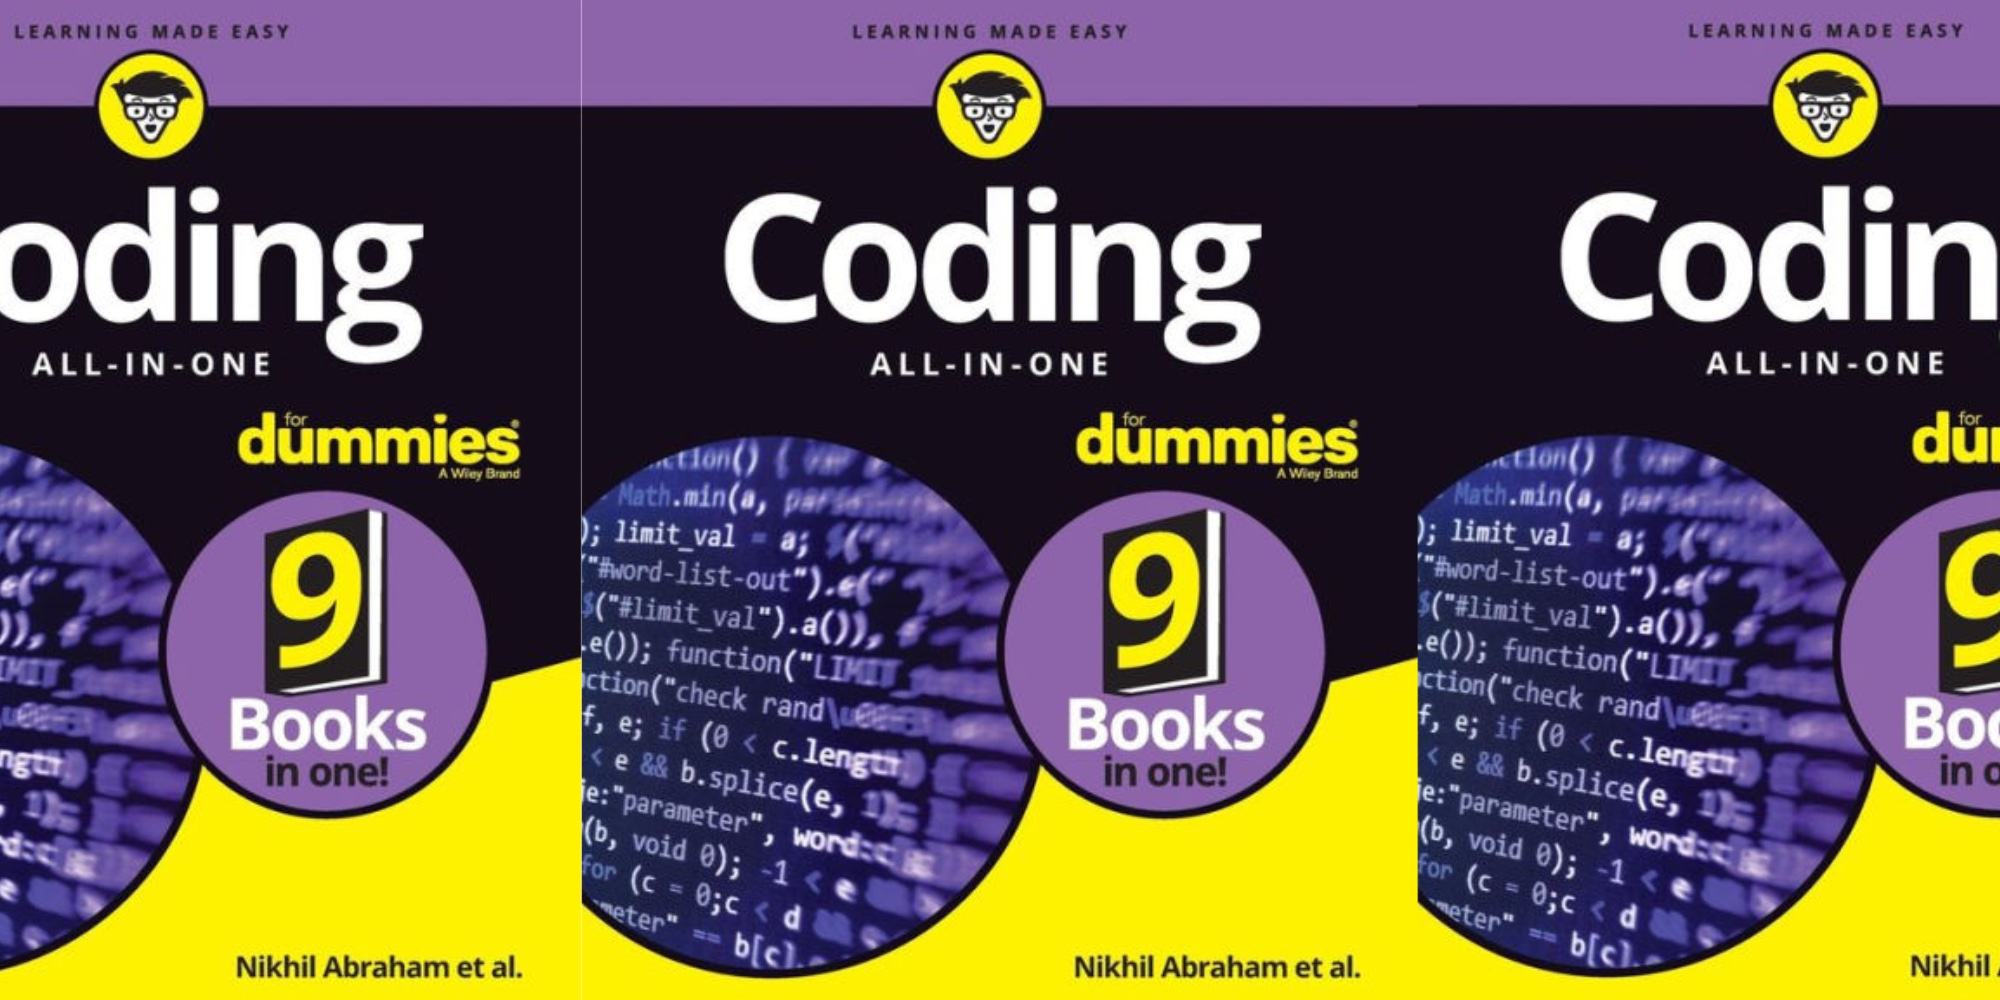 Read up on programming basics with this FREE Coding All-in-One For Dummies eBook (Reg. $17)